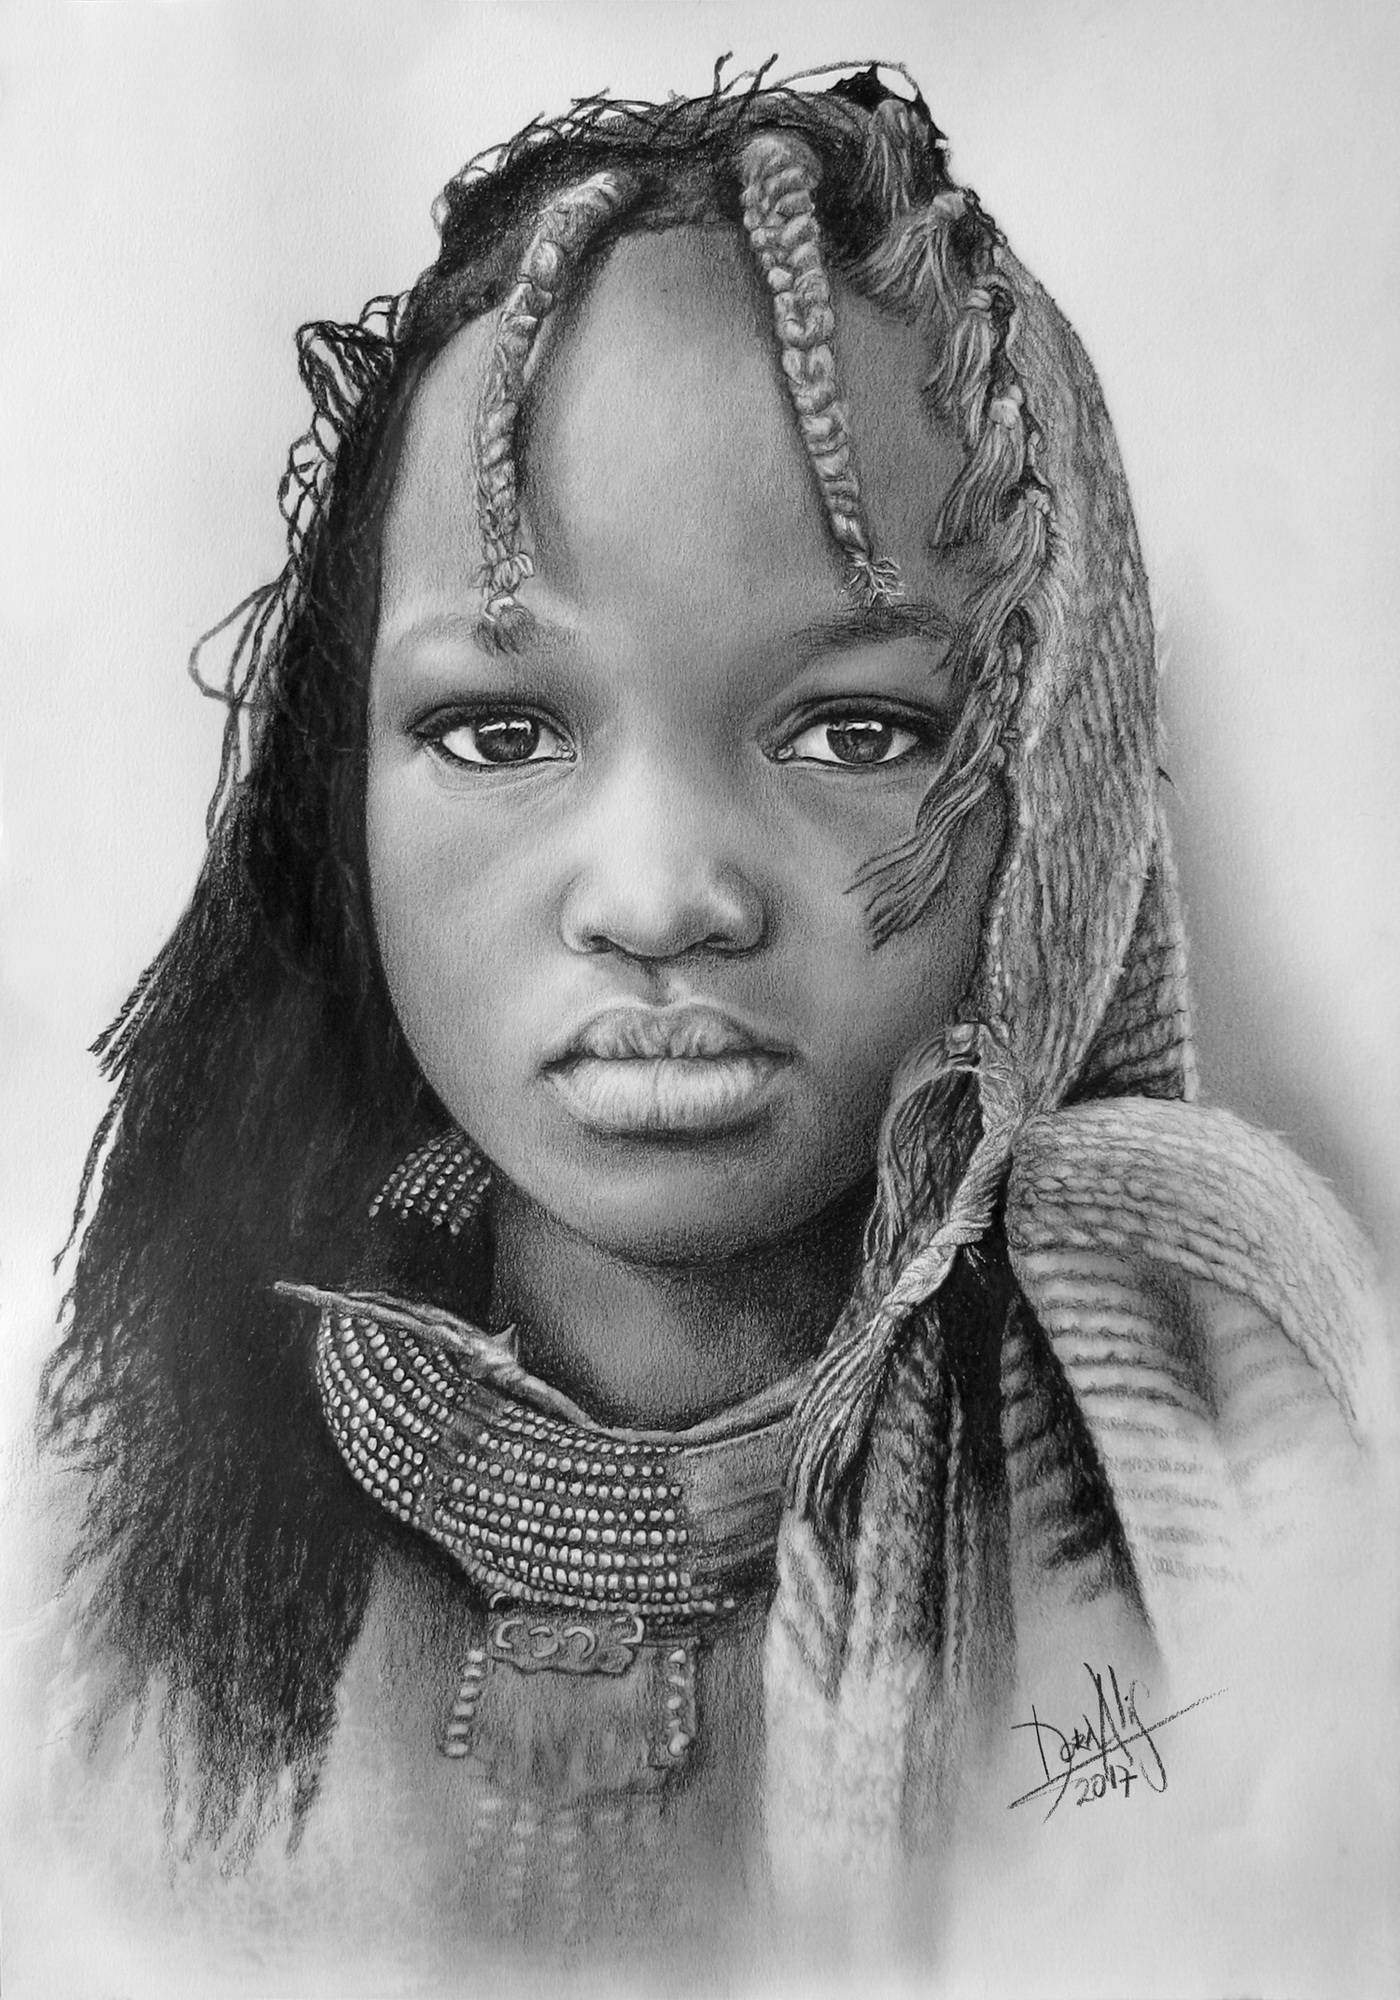 African Girl 97 Image of your art work hanging on the wall